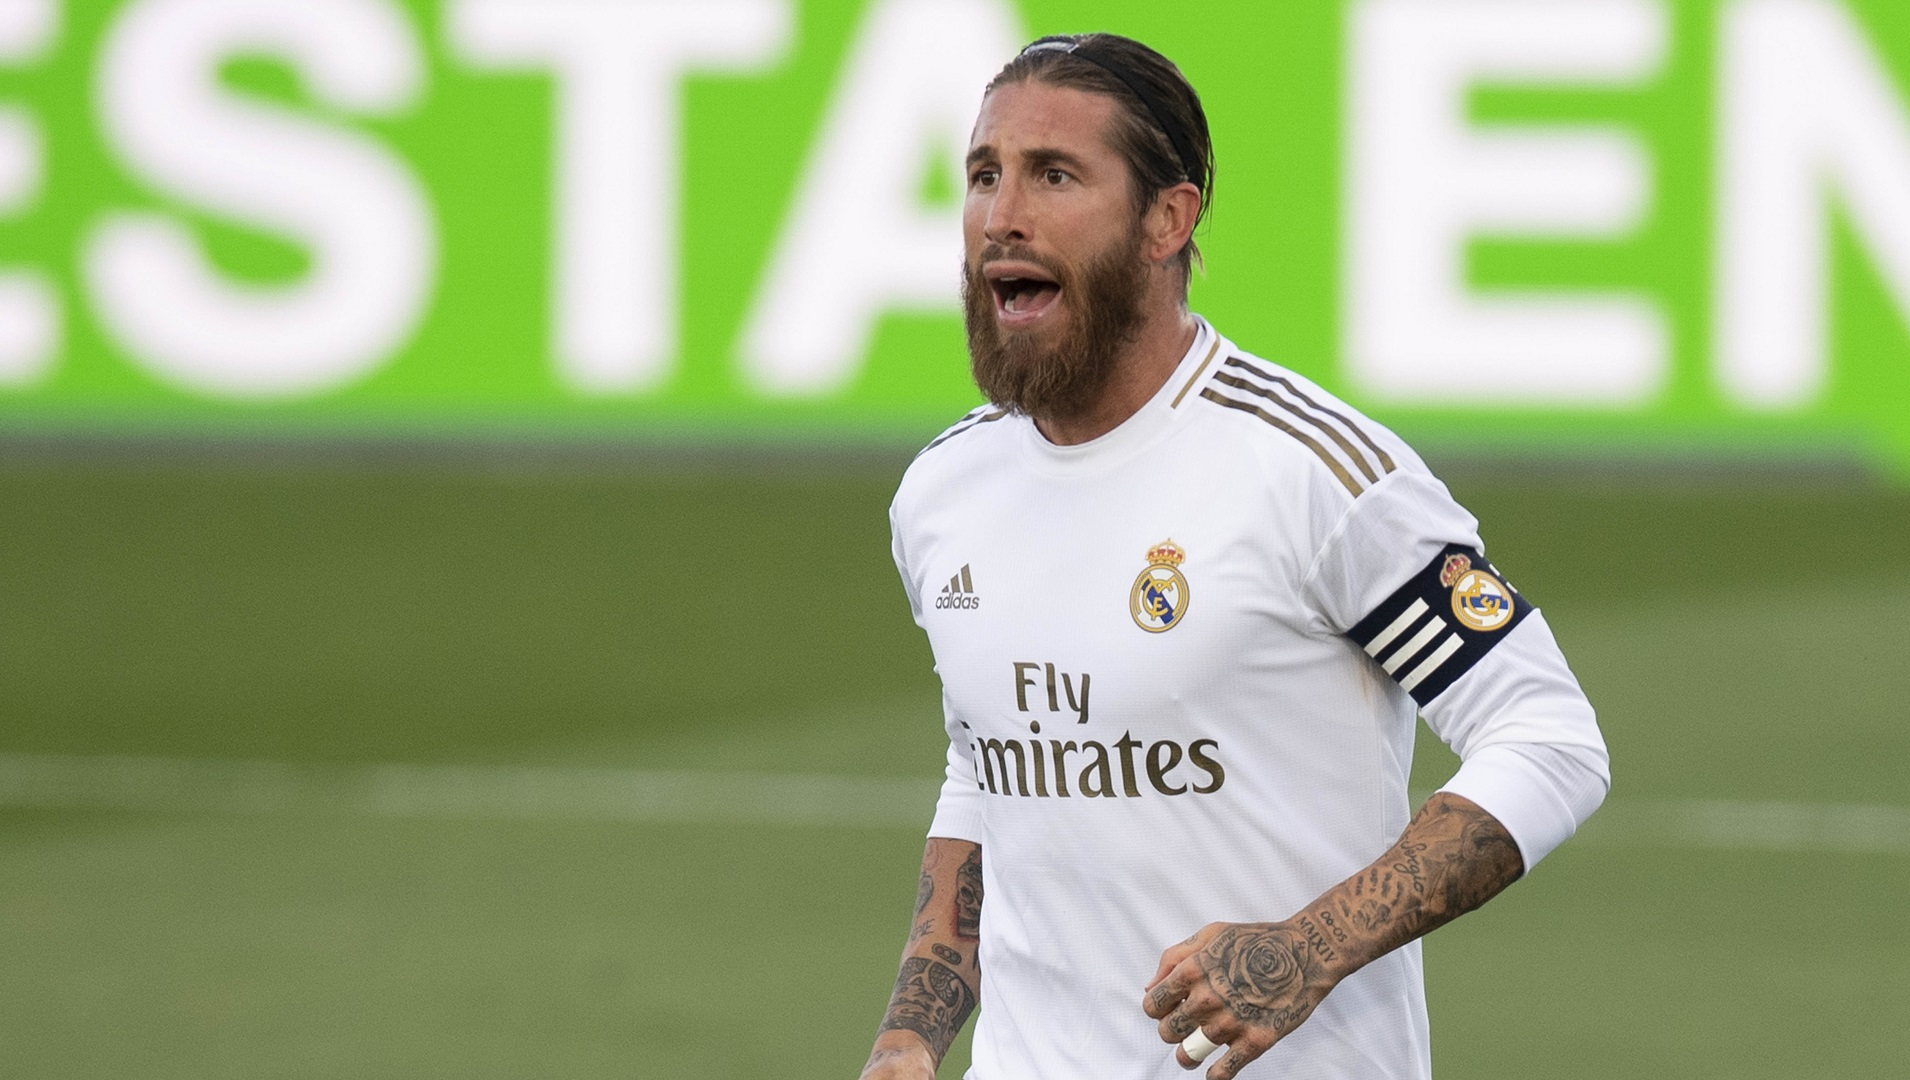 Madrid can't repeat Ronaldo mistake by letting Ramos leave, says Mijatovic